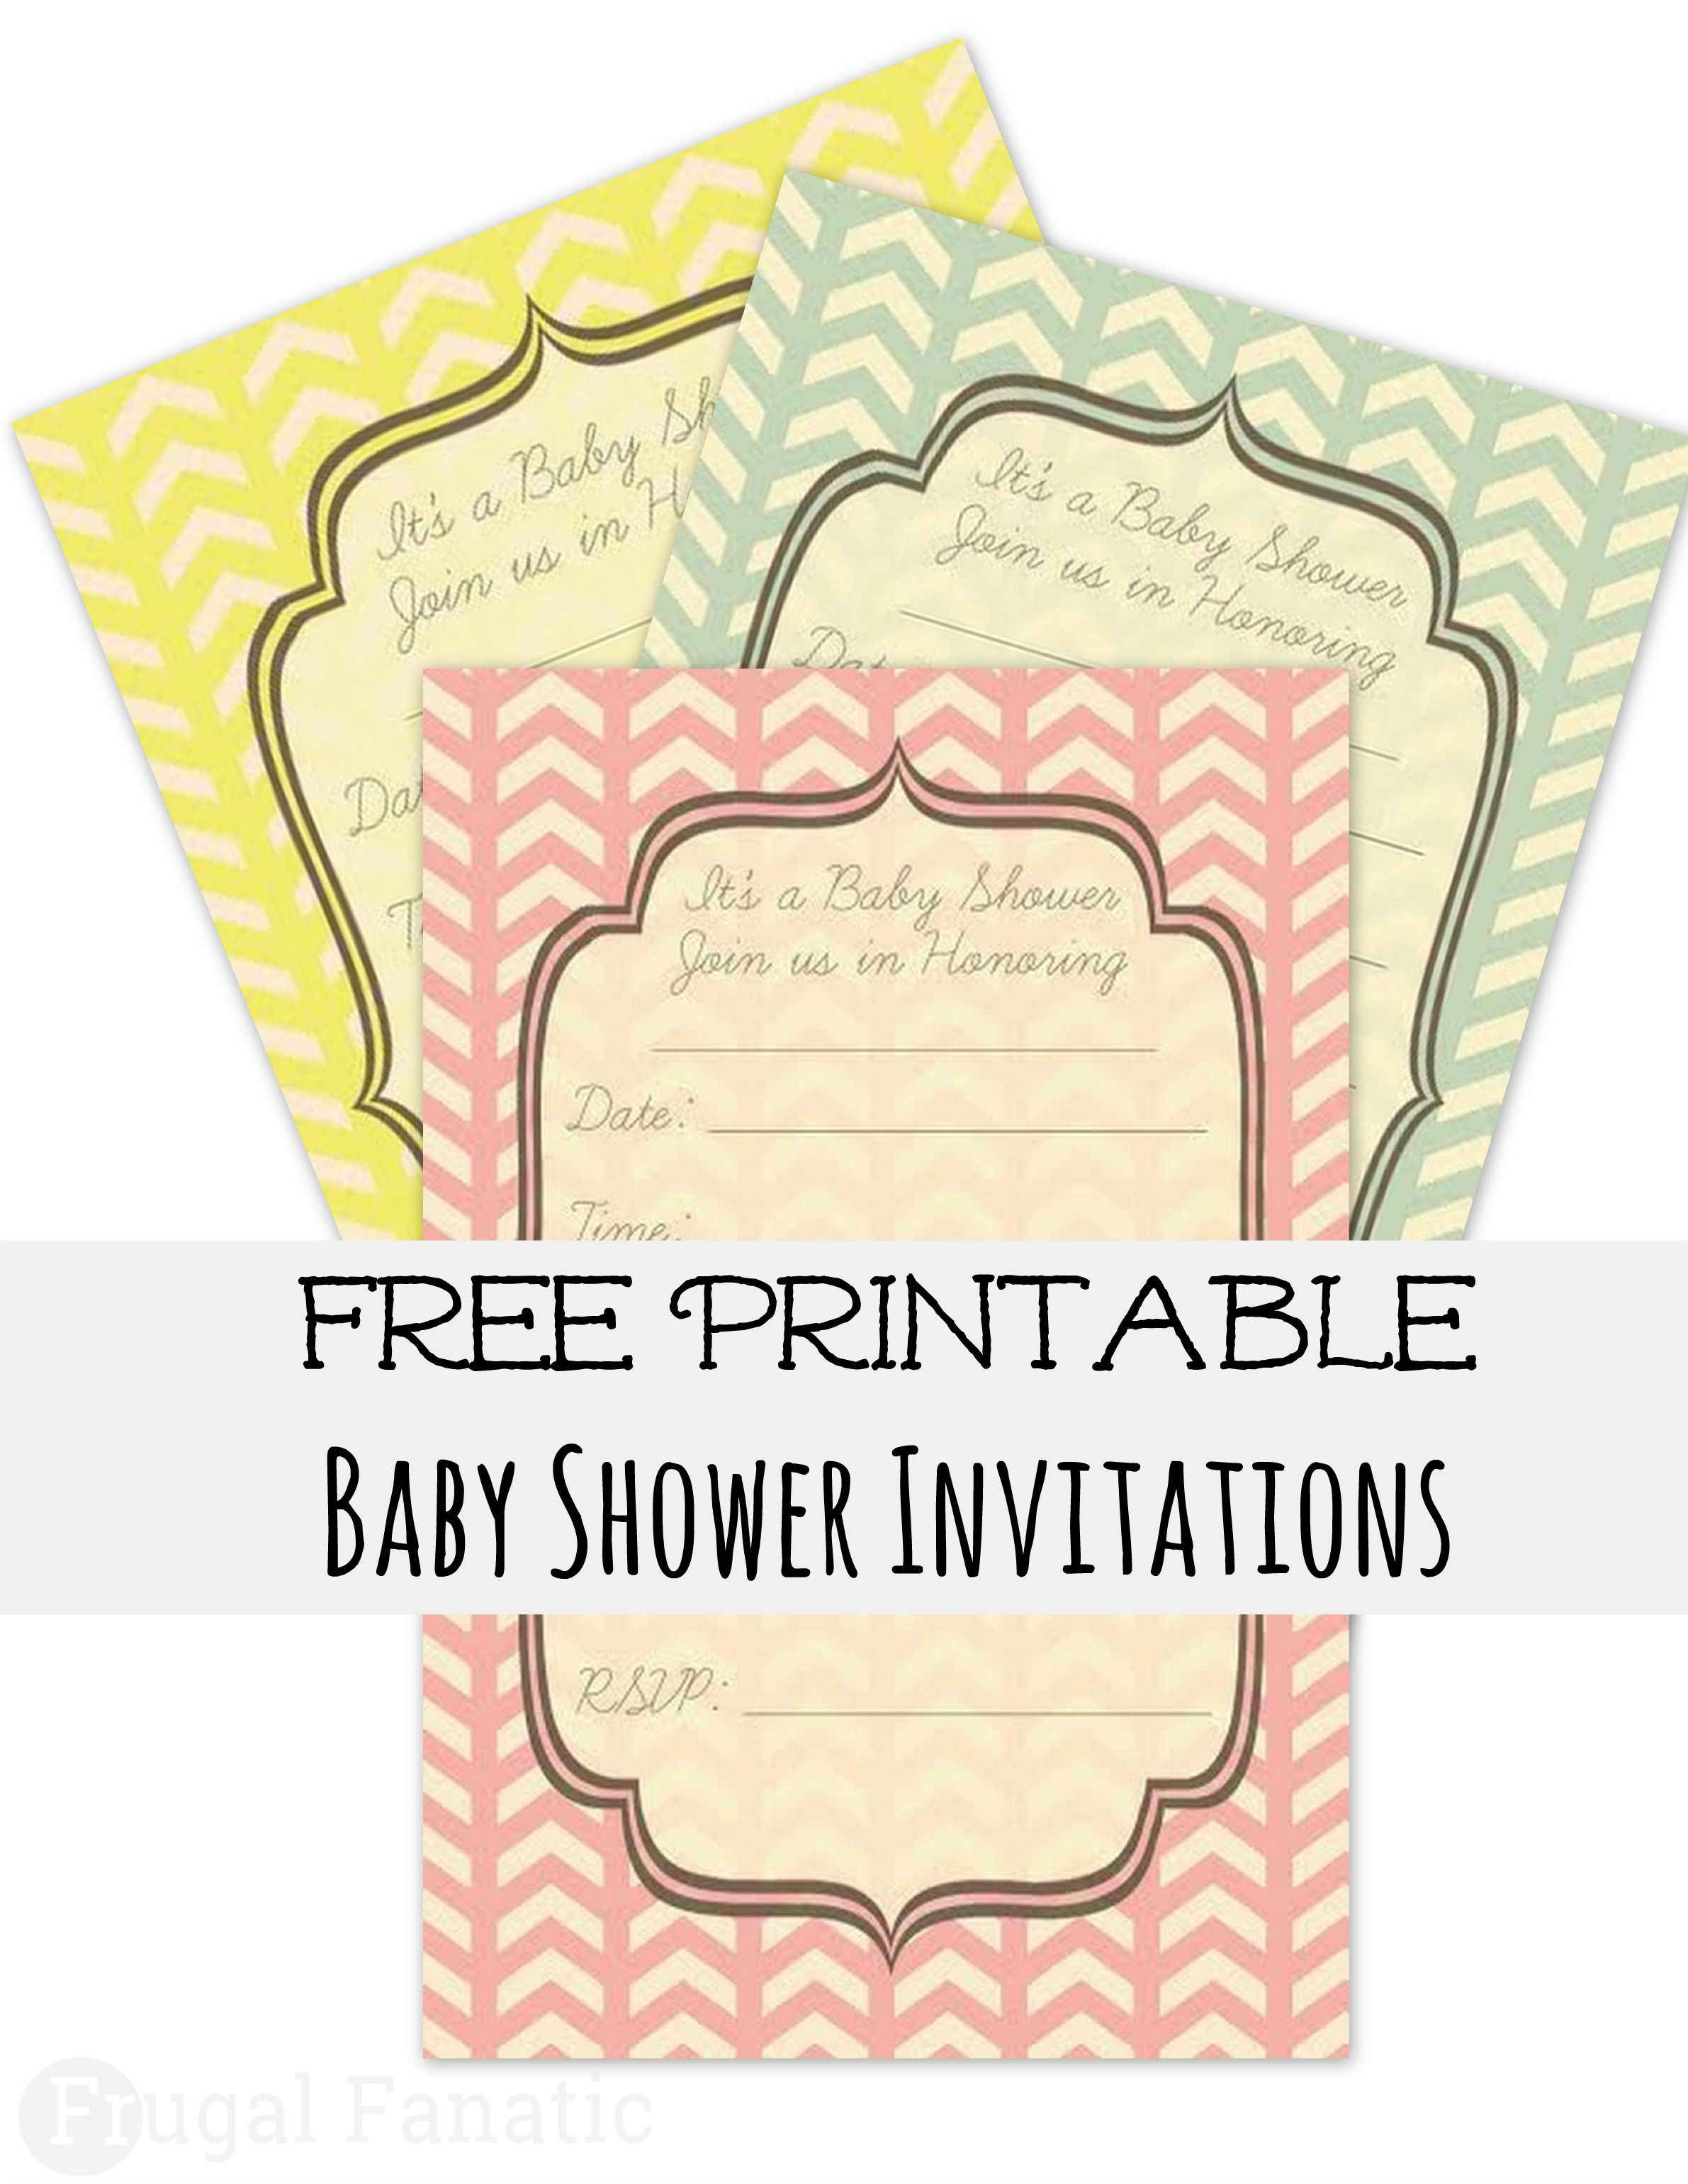 Free Baby Shower Invites | Baby Shower | Pinterest | Babyshower - Free Printable Baby Shower Invitation Maker